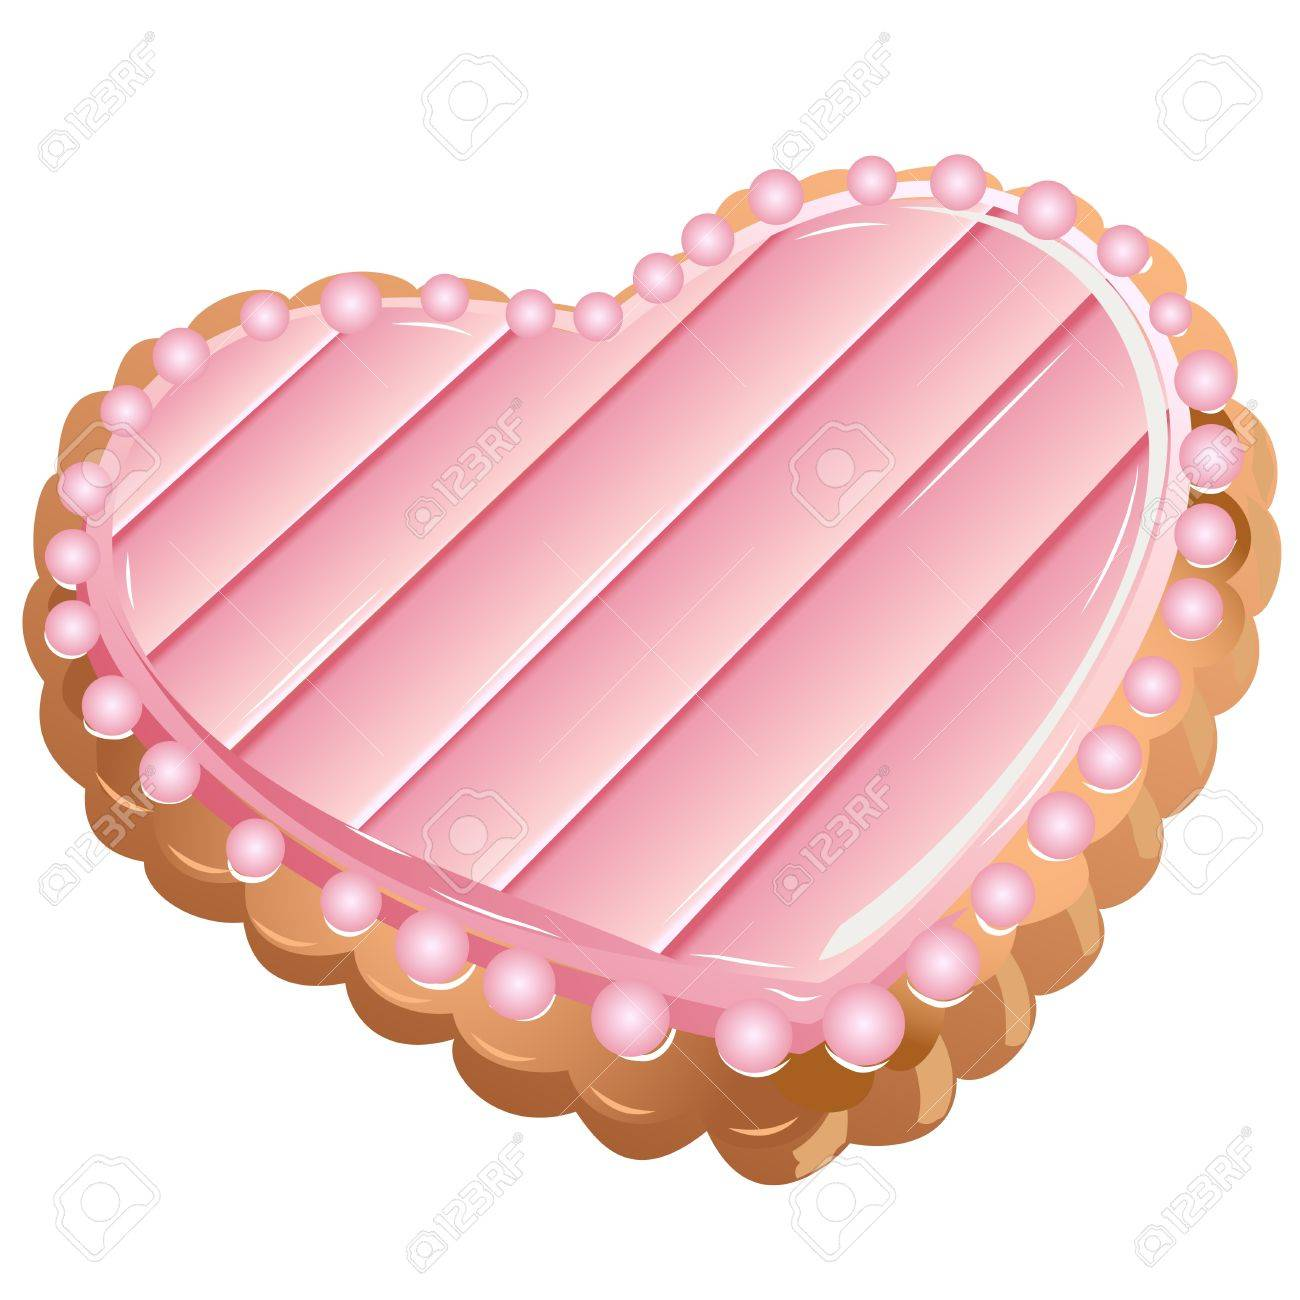 Vector illustration. A beautiful heart-shaped cookies. Stock Vector - 8603077